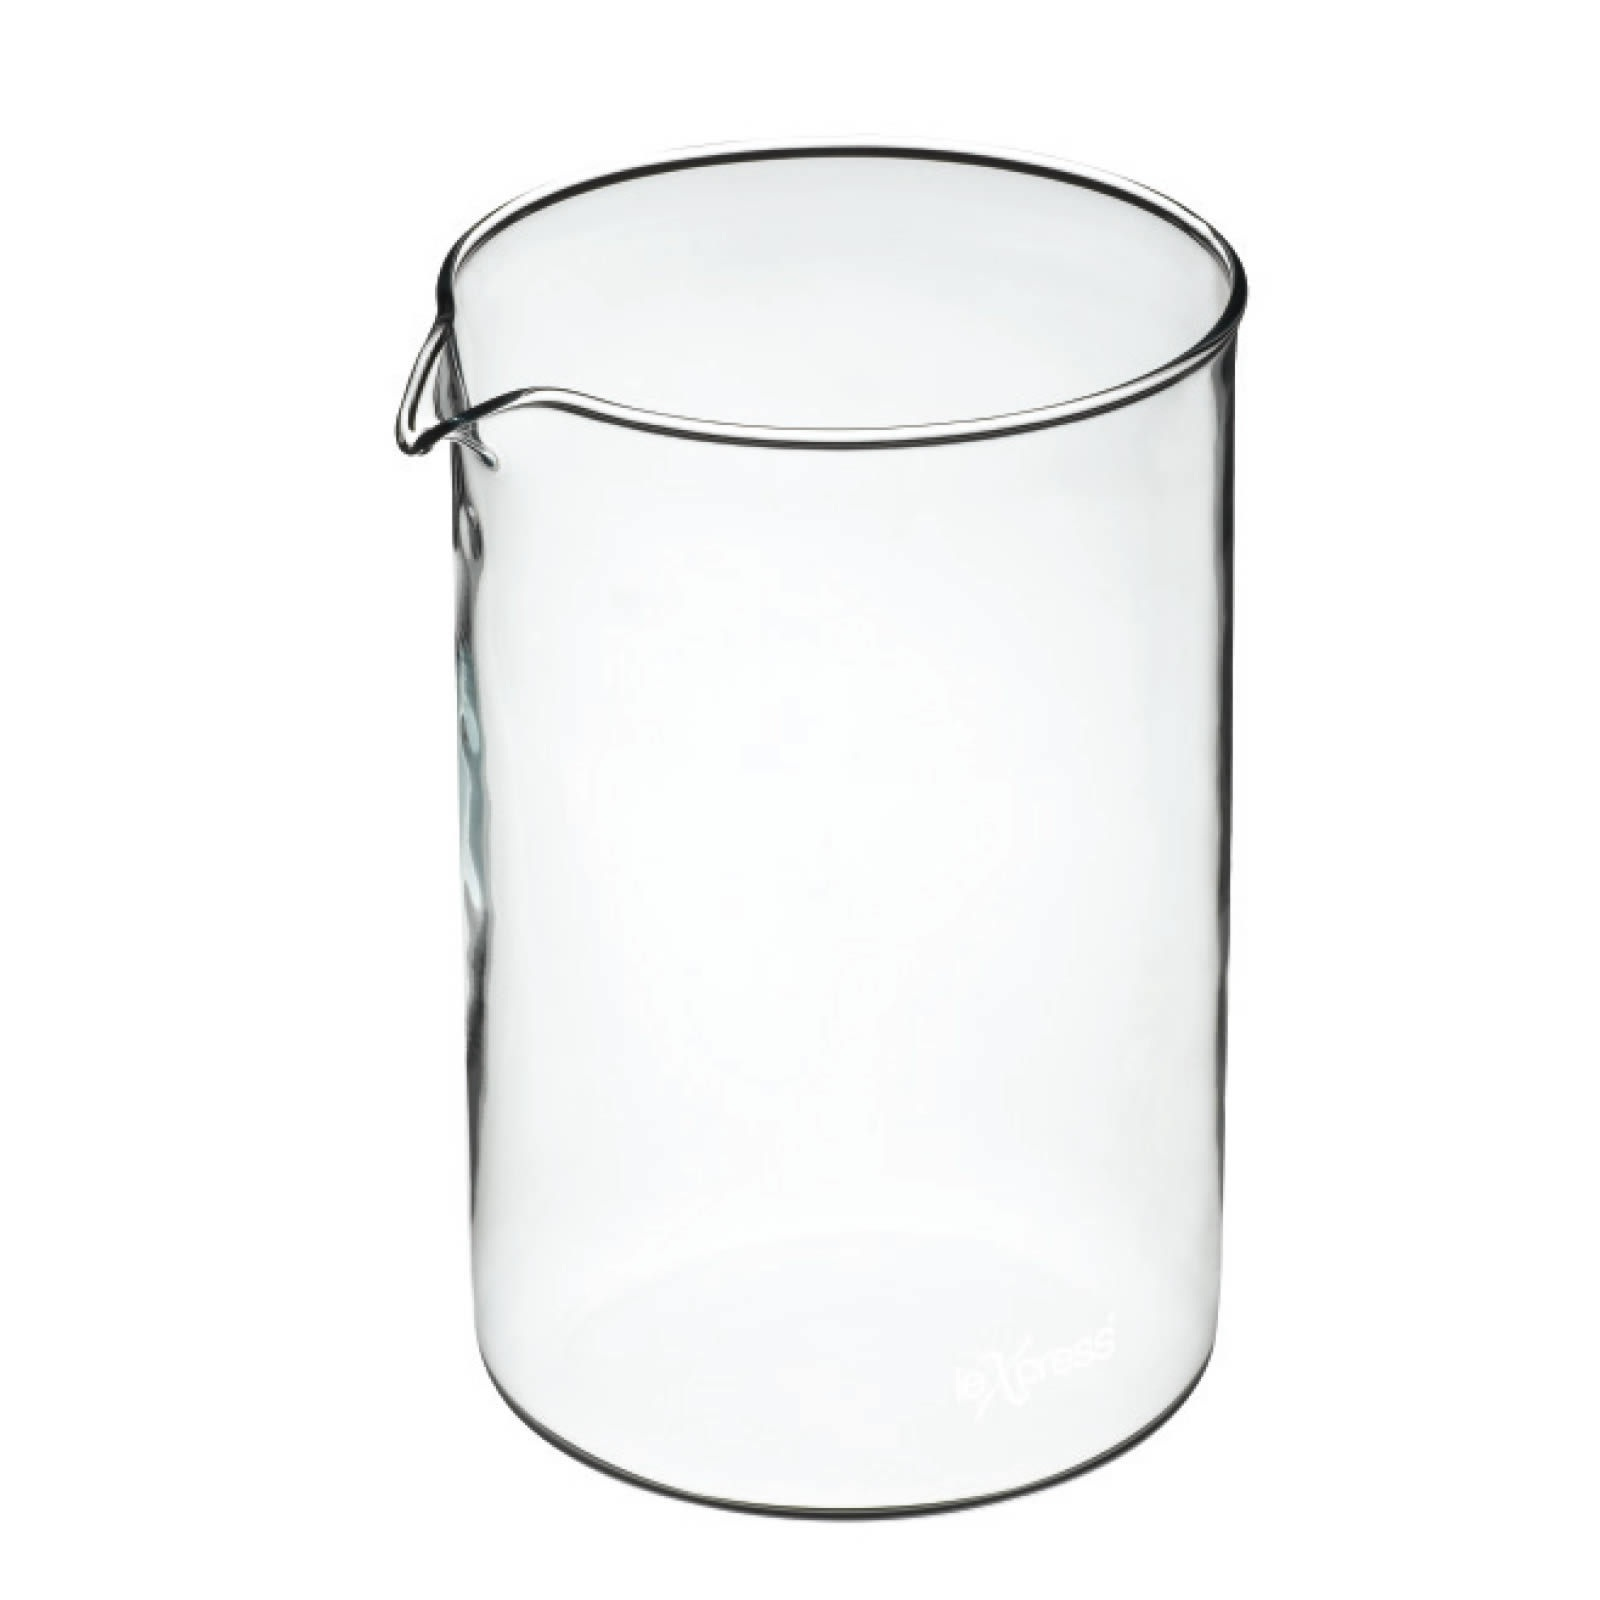 Coffee Maker Jug Replacement : Le Xpress Replacement 12 Cup Glass Jug Cafetieres & Coffee Makers Drinking: Tea & Coffee ...